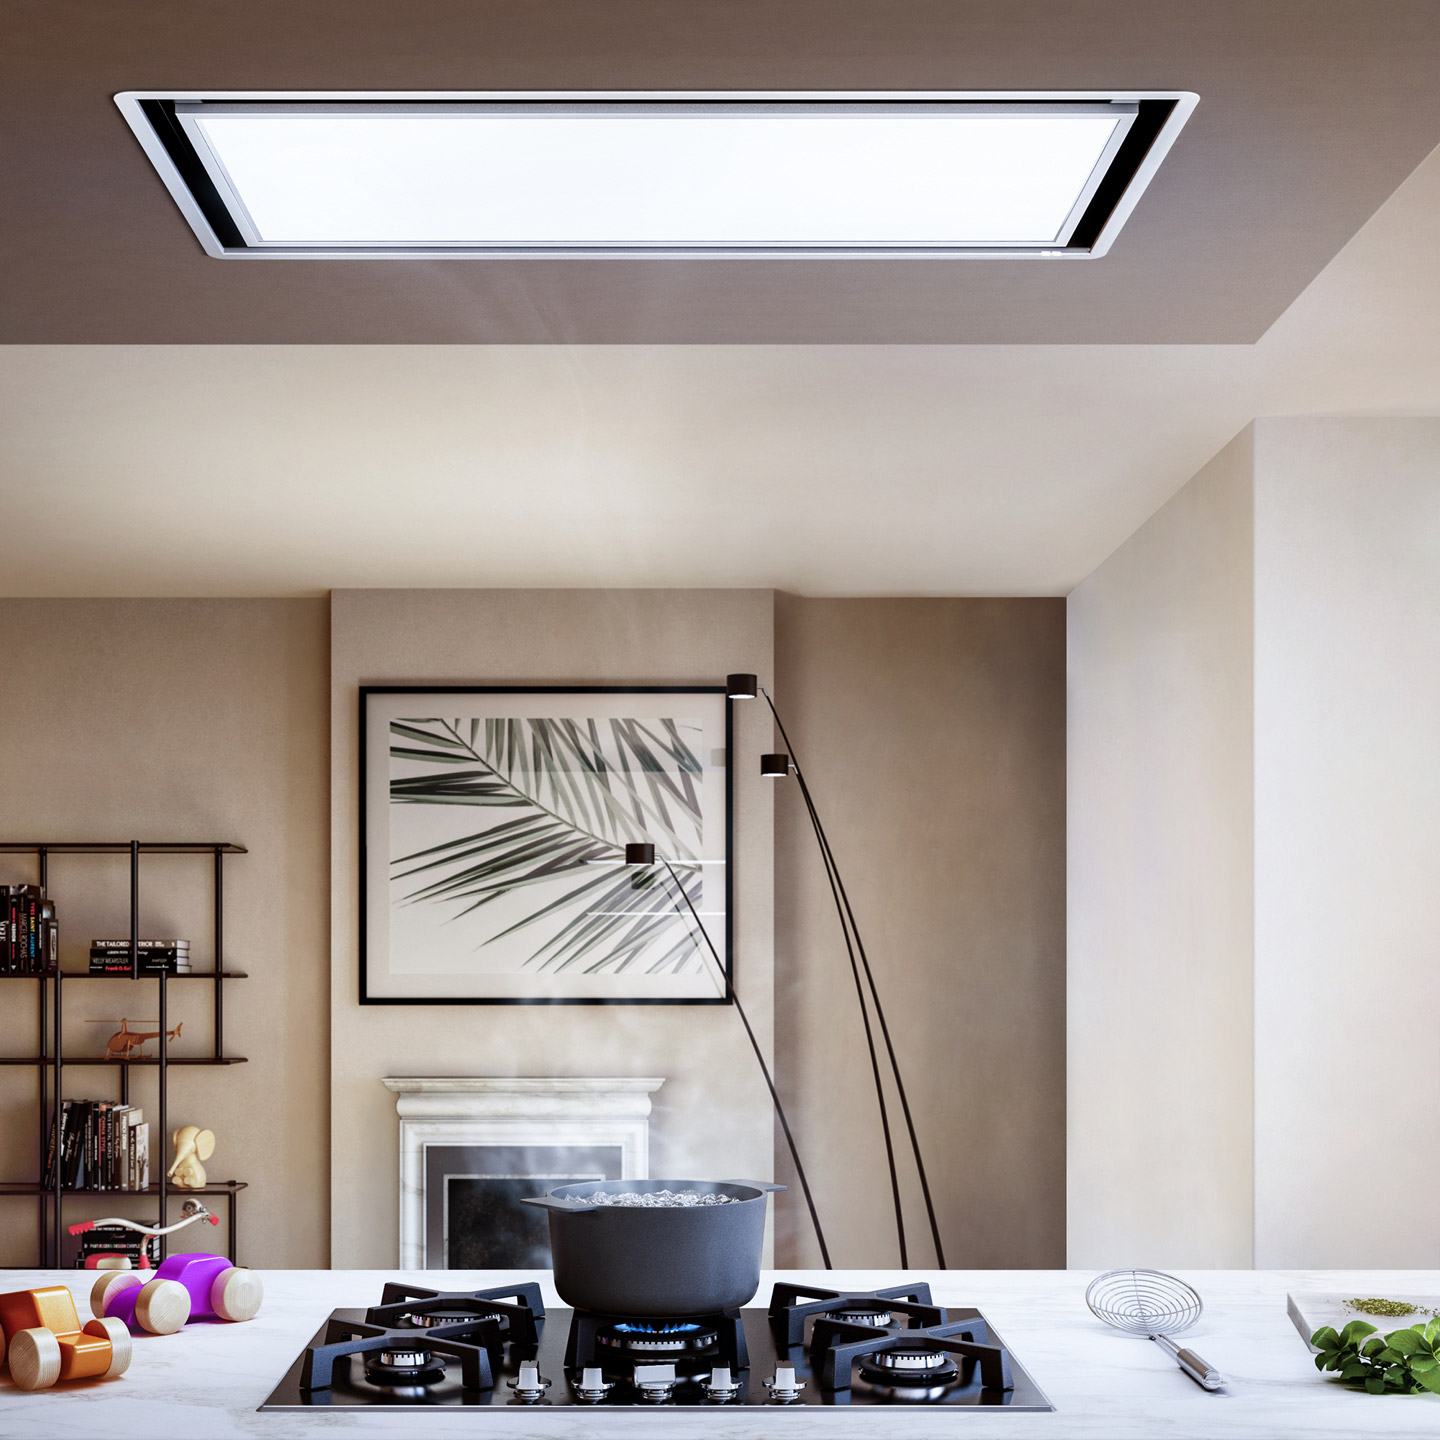 How to choose the best cooker hood for your kitchen   Elica